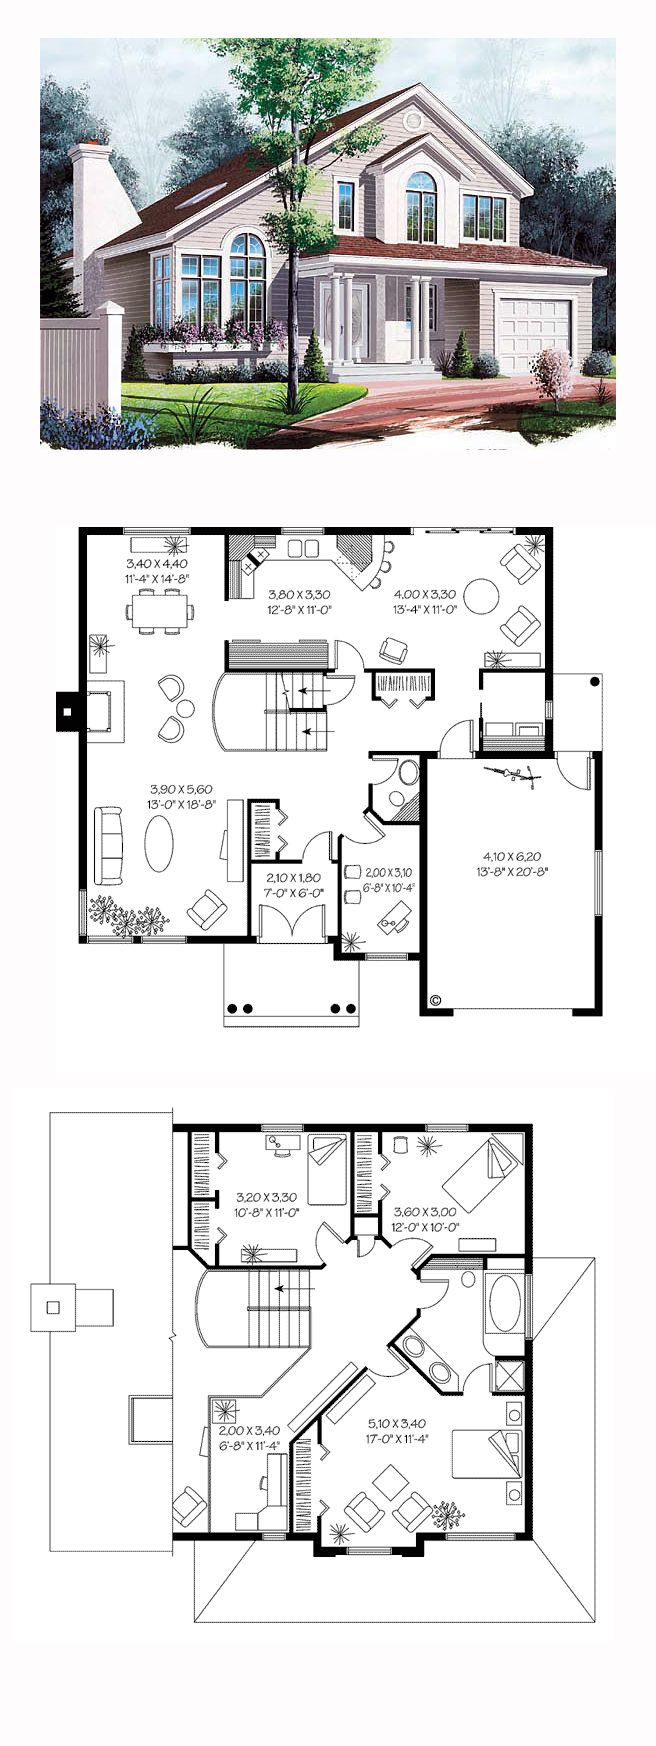 European Style House Plan 65253 With 3 Bed 2 Bath 1 Car Garage Victorian House Plans Sims House Plans House Plans